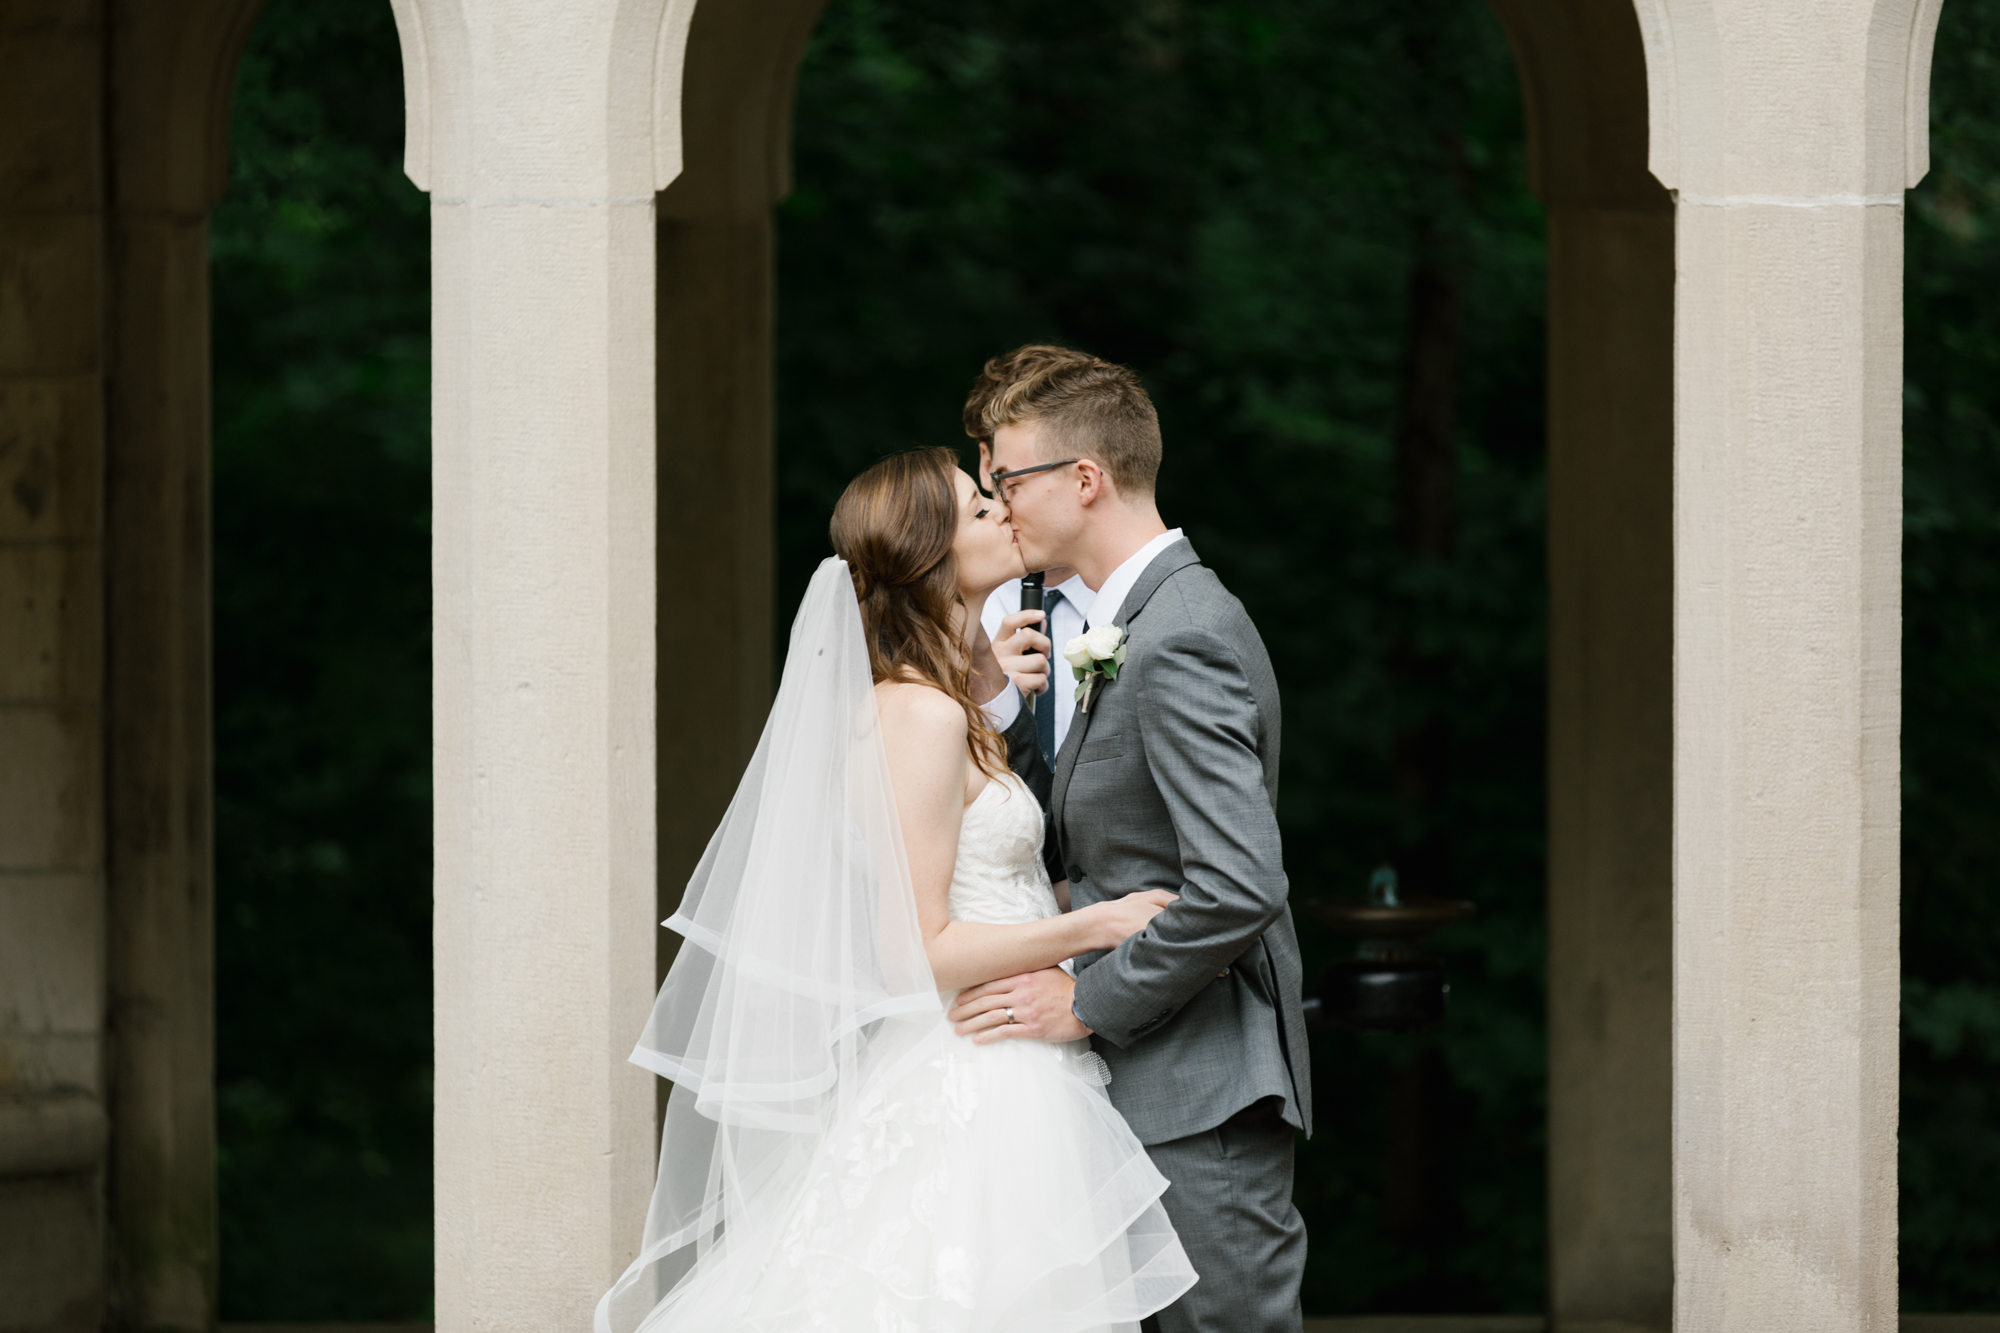 A photo of a couple kissing during their wedding at the Indiana Memorial Union at Indiana University in Bloomington, Indiana.